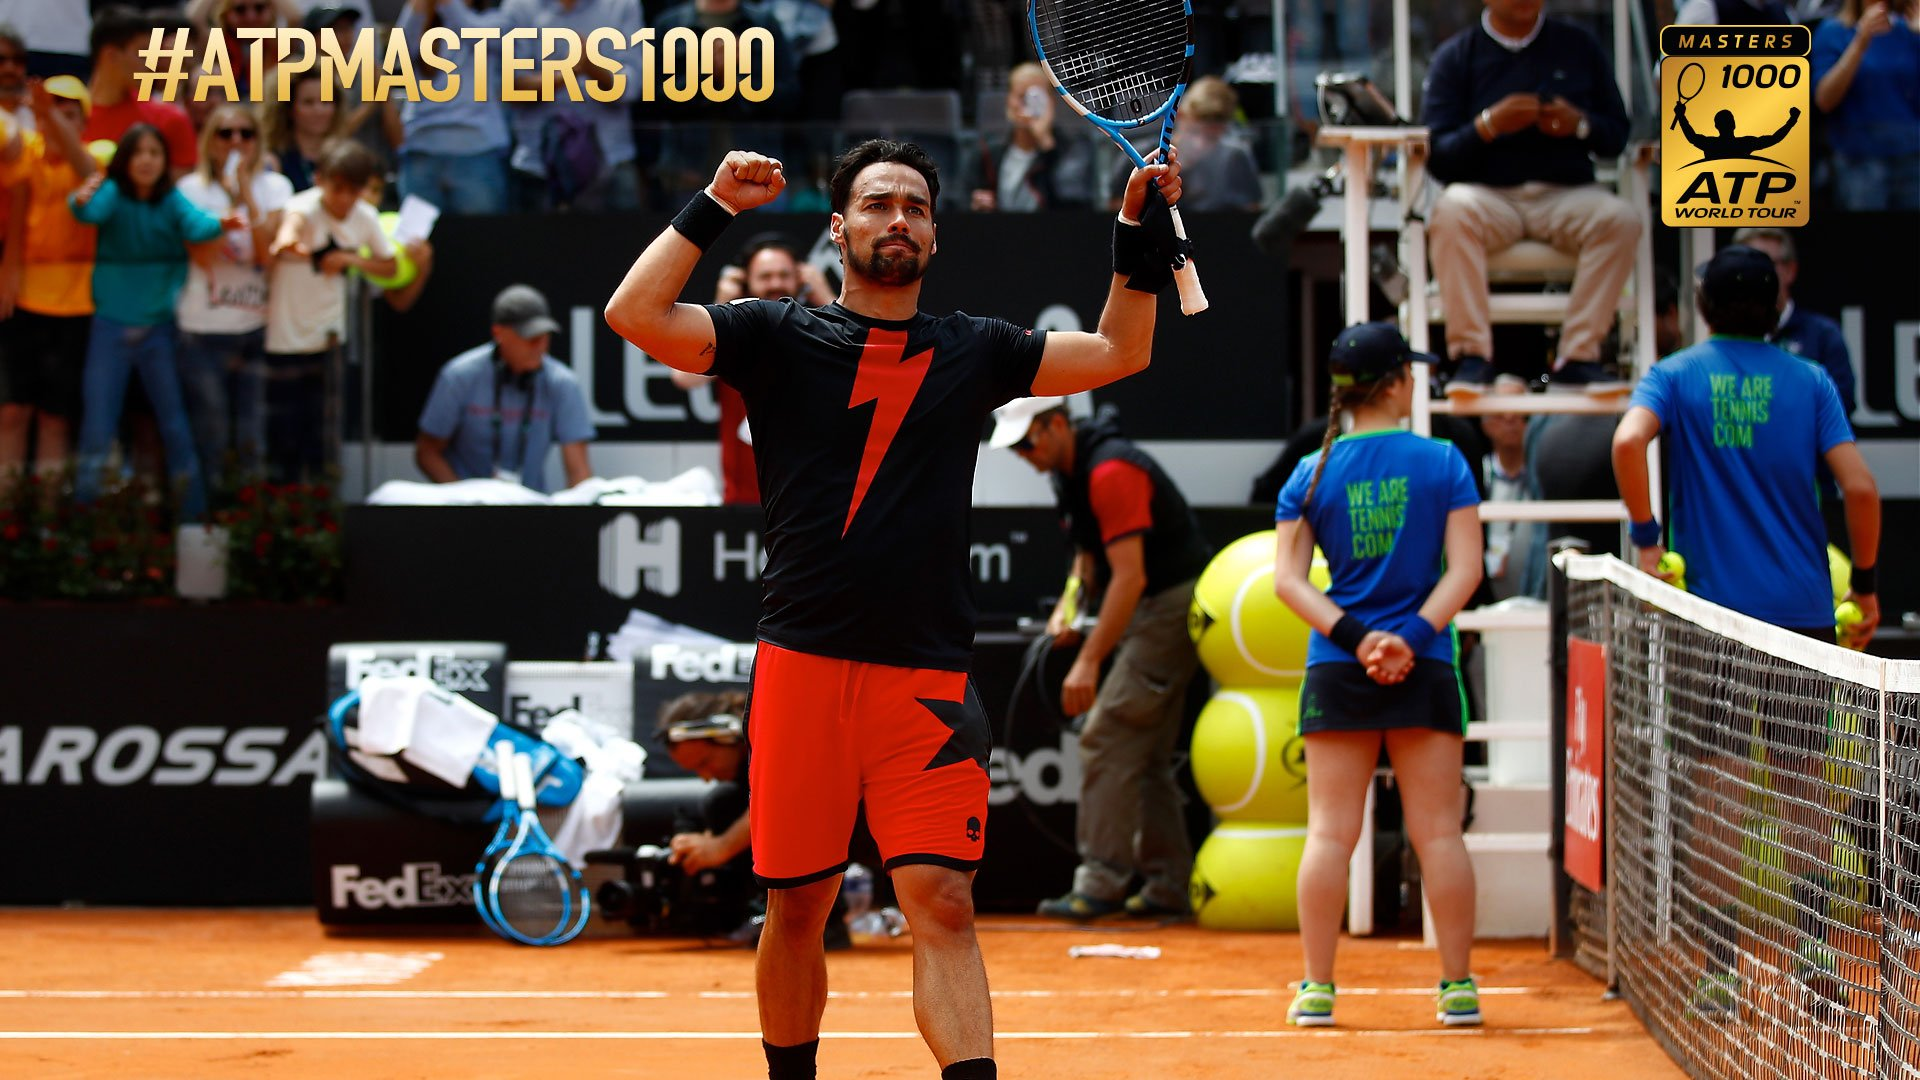 ����Fabio Fognini completes a thrilling victory over Dominic Thiem in Rome.   Read More: https://t.co/Yp502LGOvJ https://t.co/YXMTPCjRCu